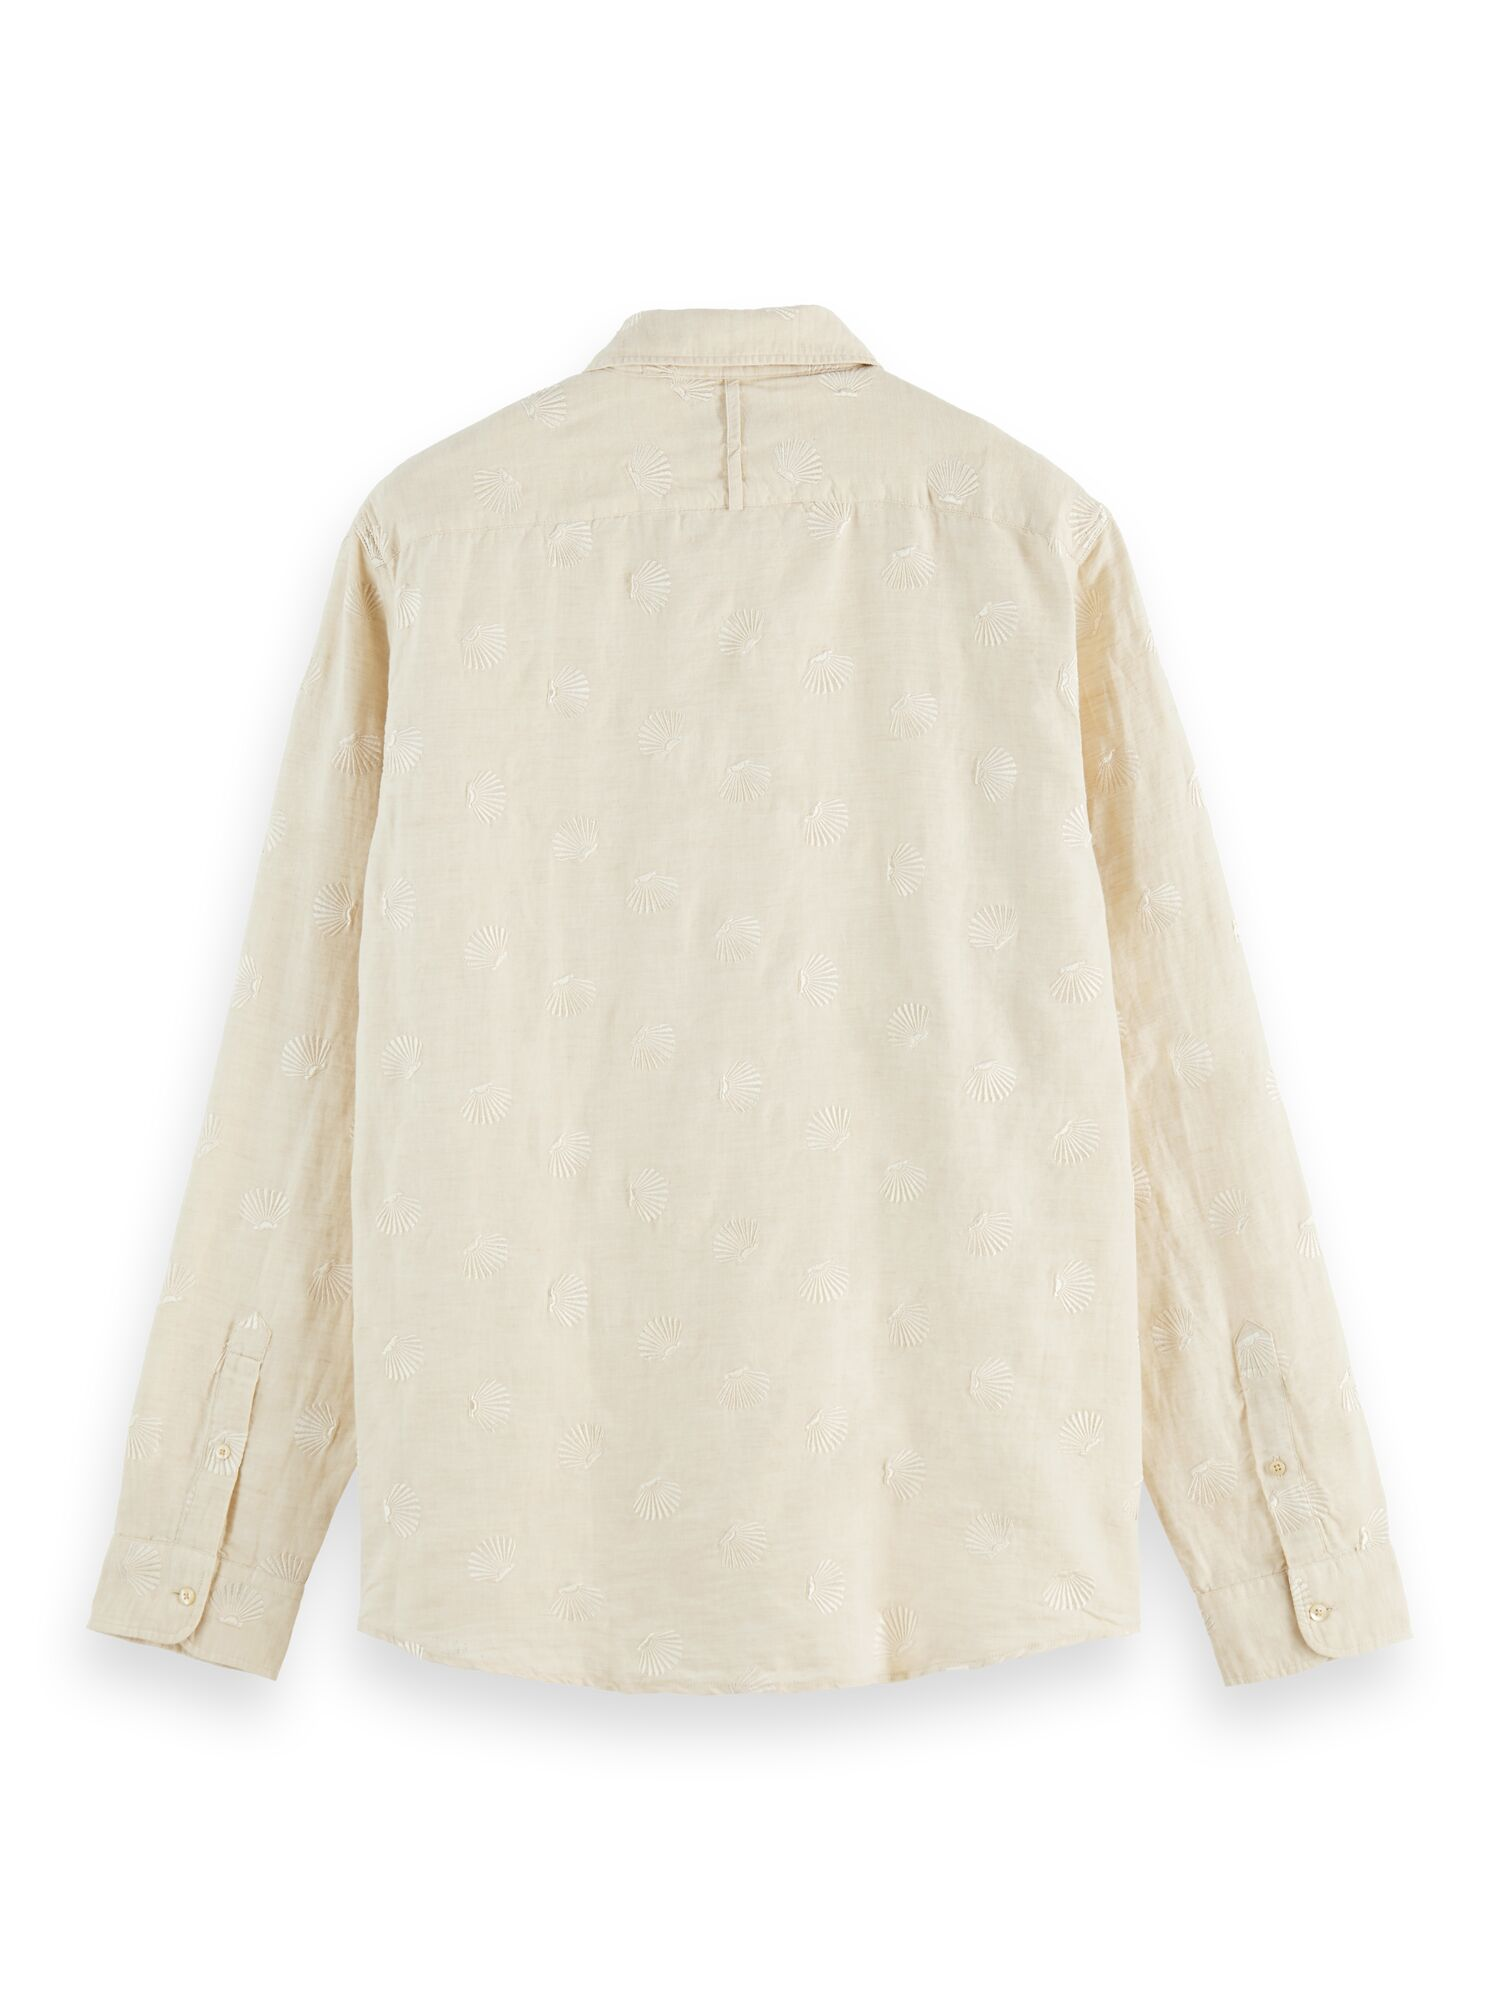 Scotch & Soda   RELAXED FIT- Embroidered organic cotton blend shirt